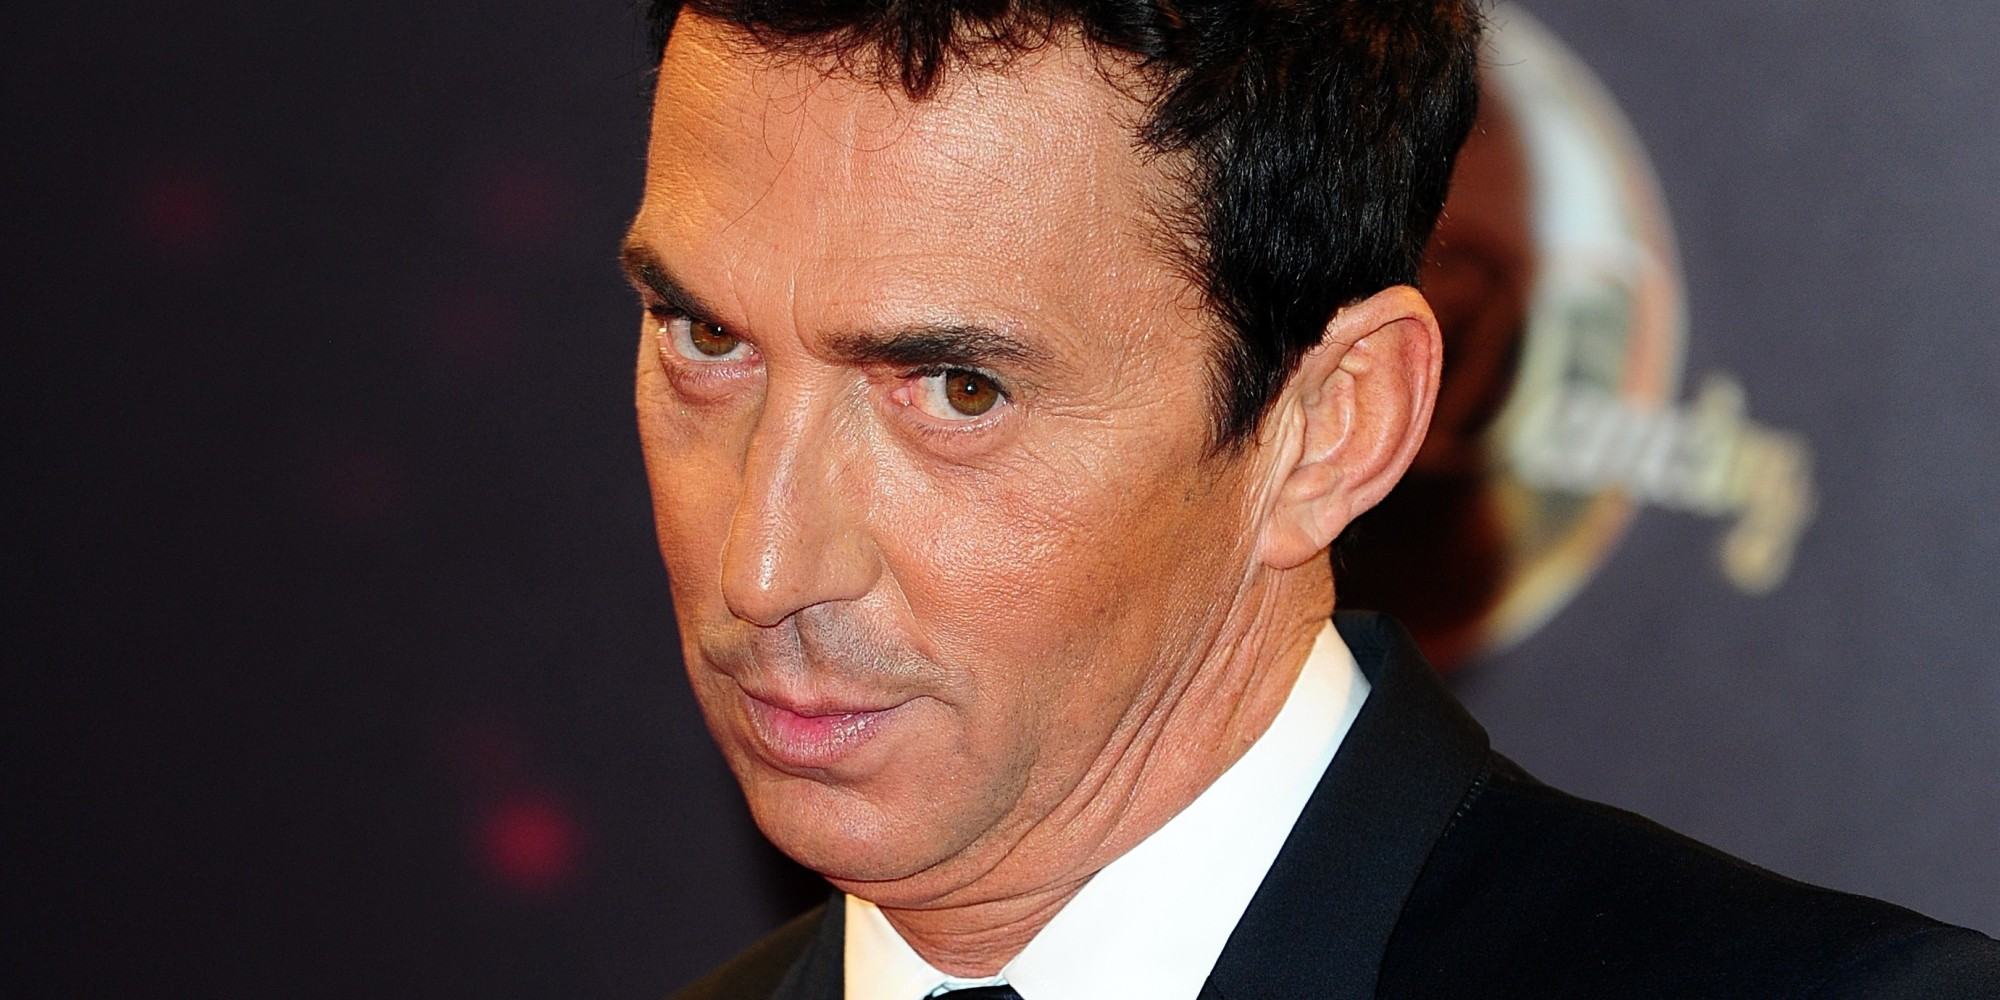 bruno tonioli rude comment